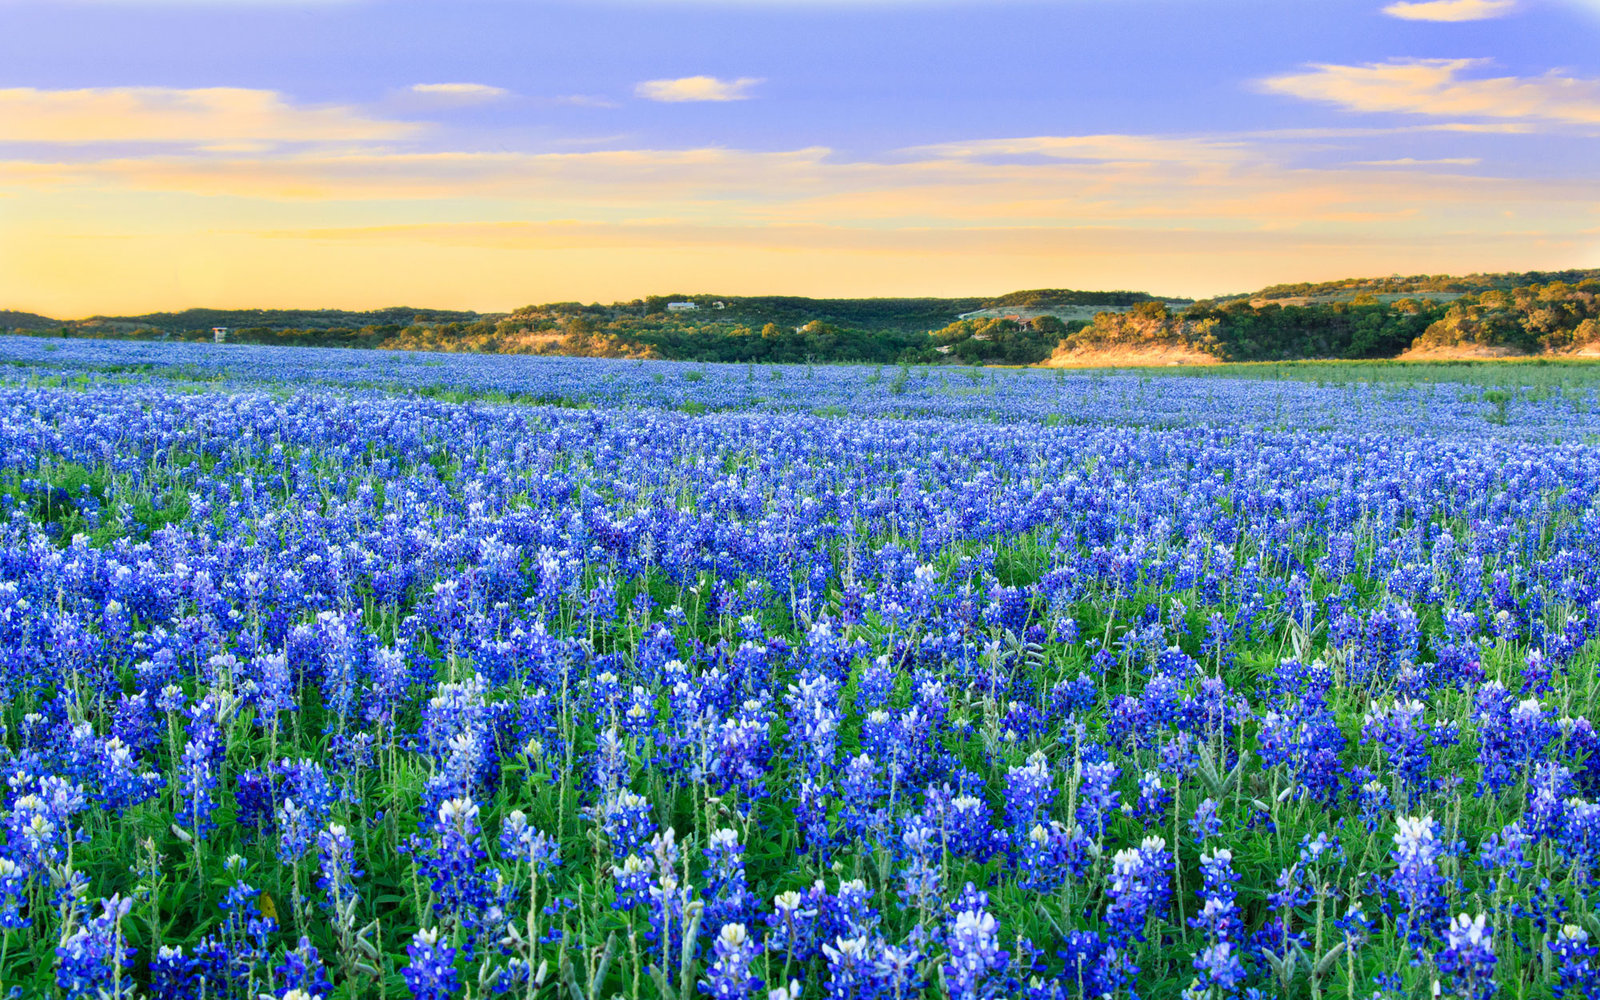 Texas Bluebonnets